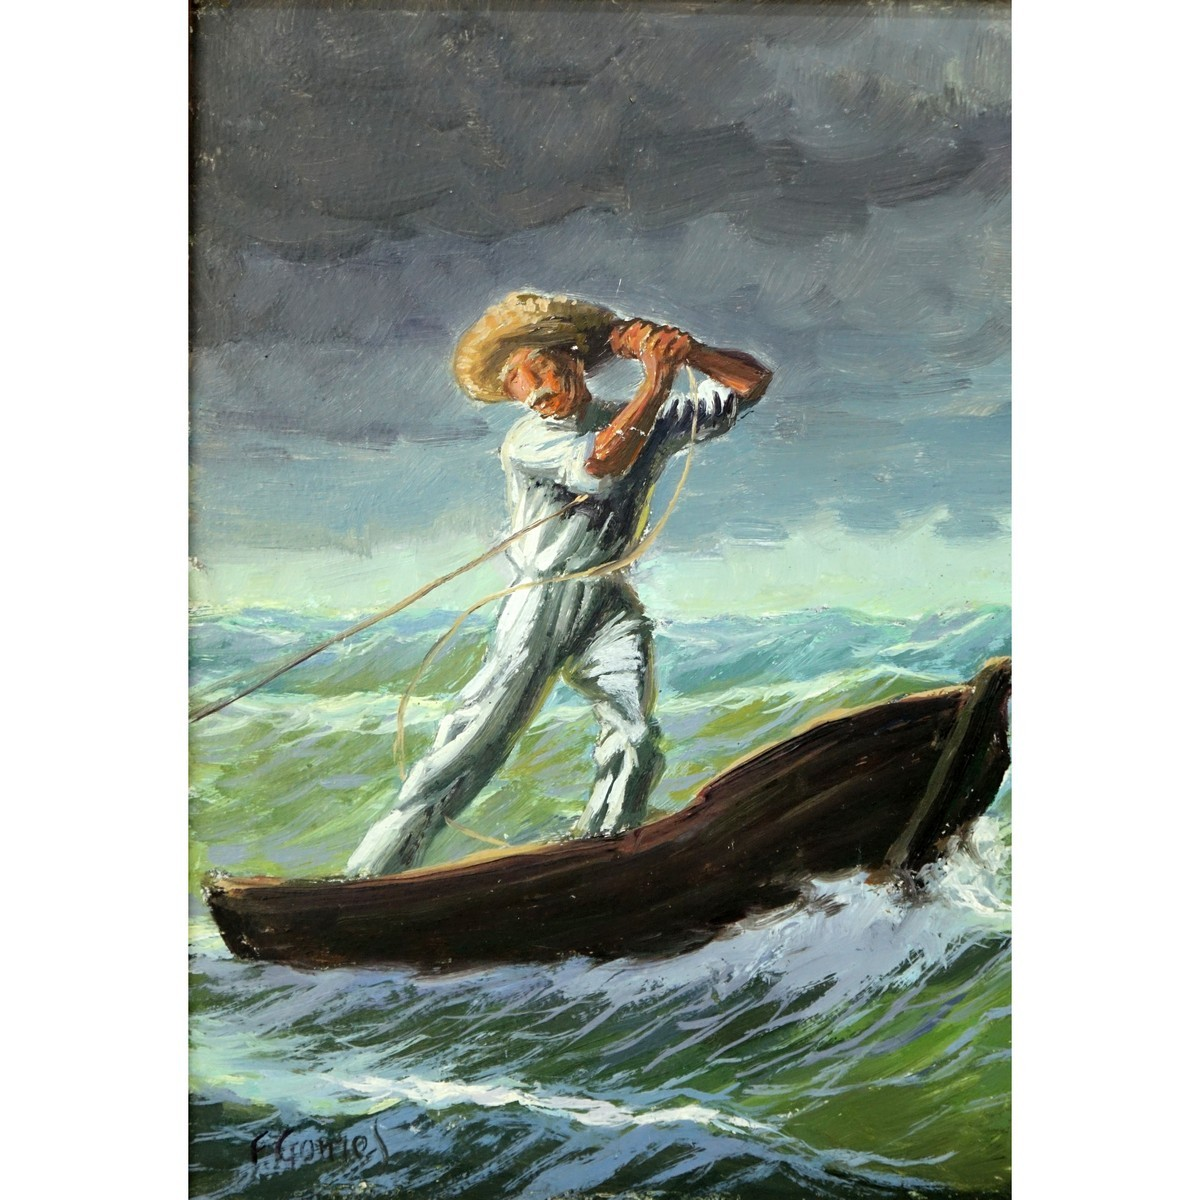 Fernando Pinto Gomes, (20th C) Oil on Masonite, Fisherman at Sea,